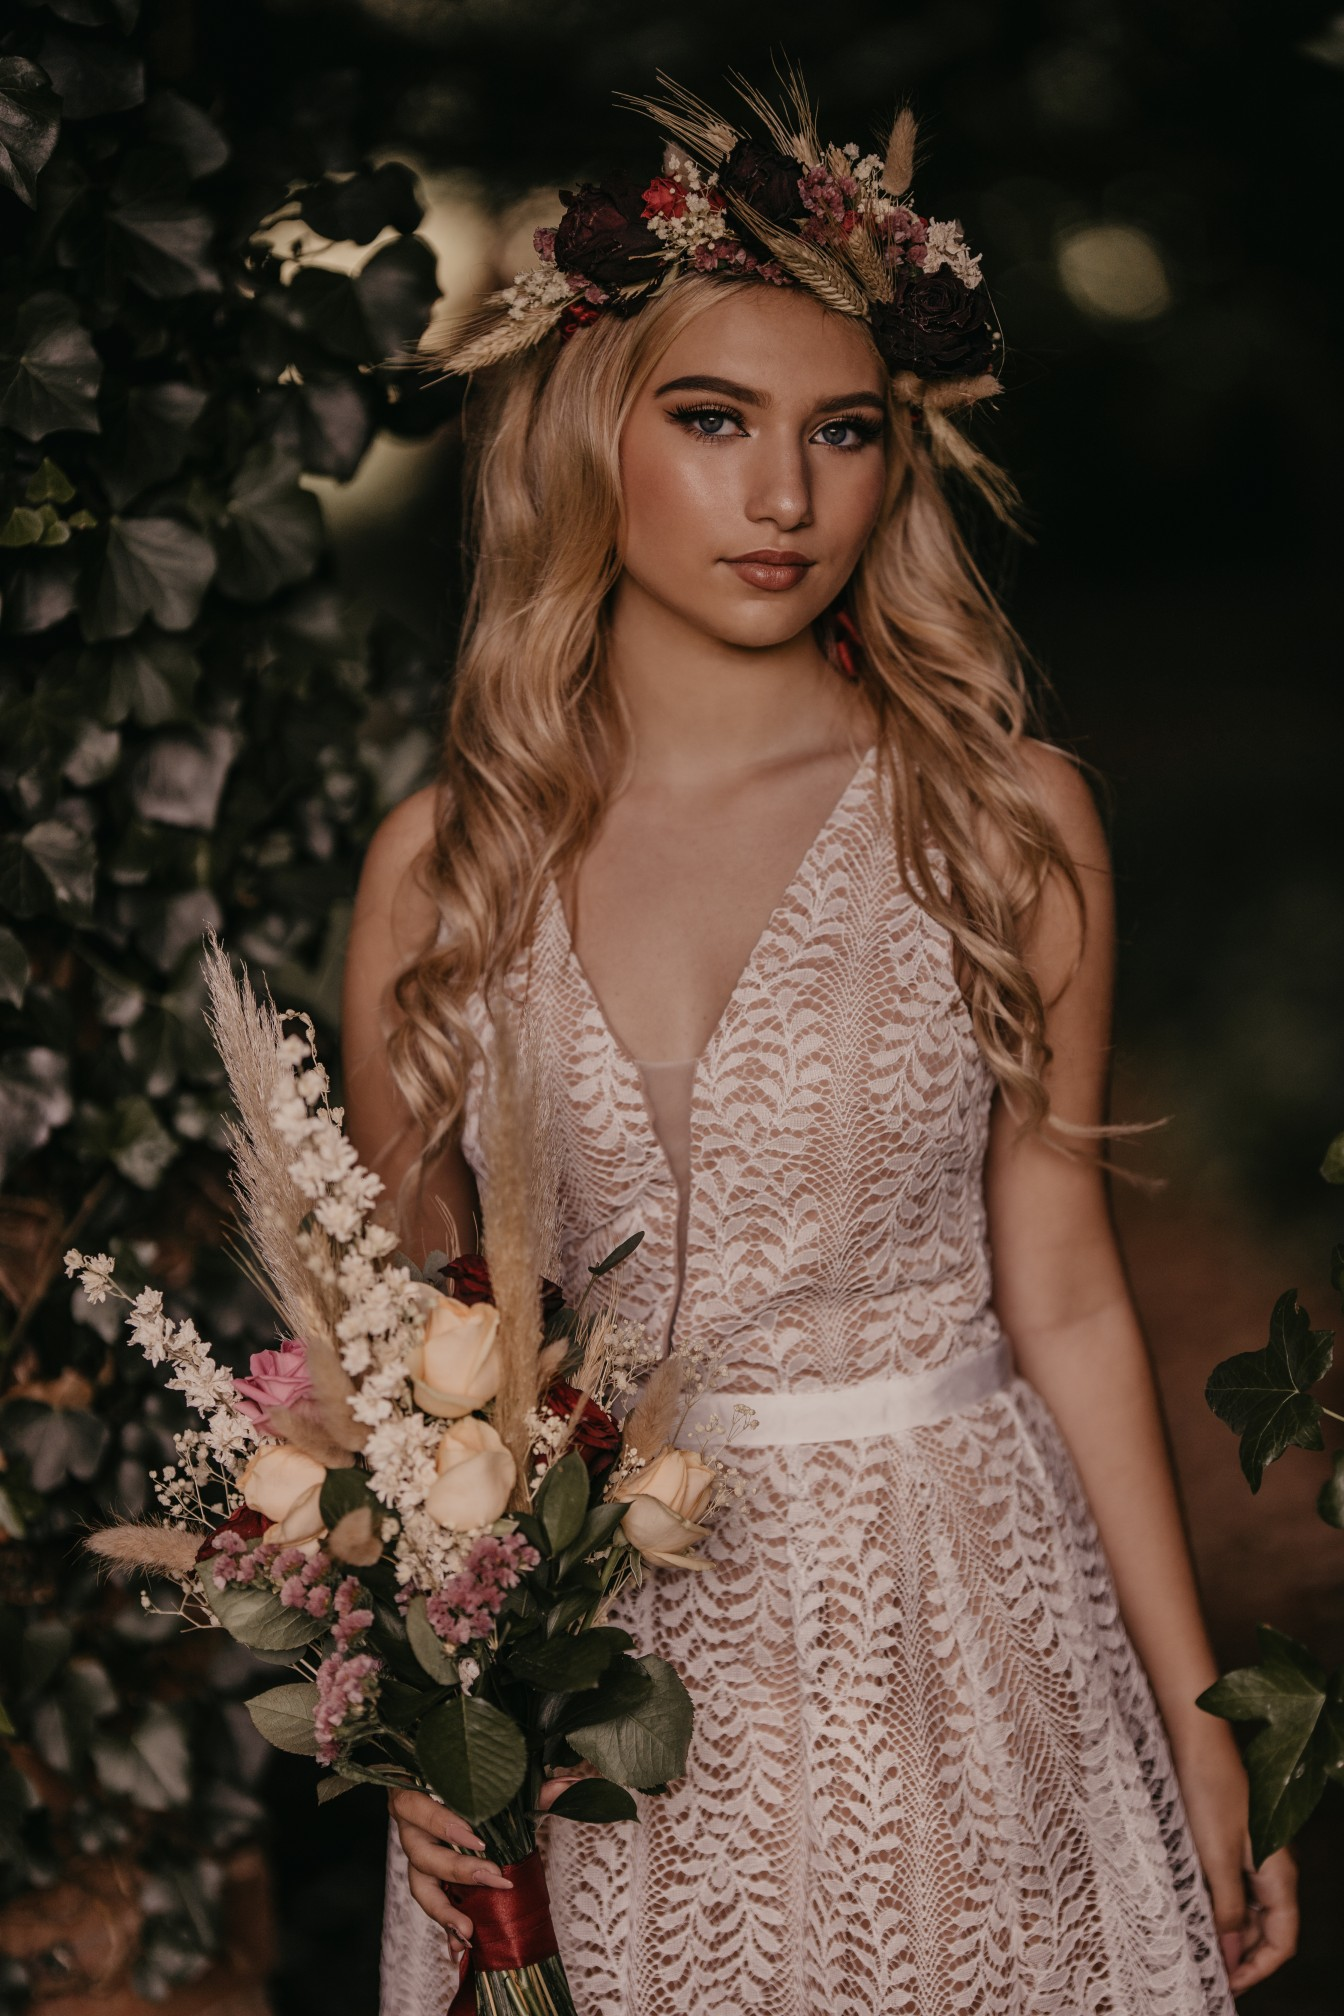 glowing bridal makeup, simple wedding dress and beautiful wedding flowers - fairytale boho wedding